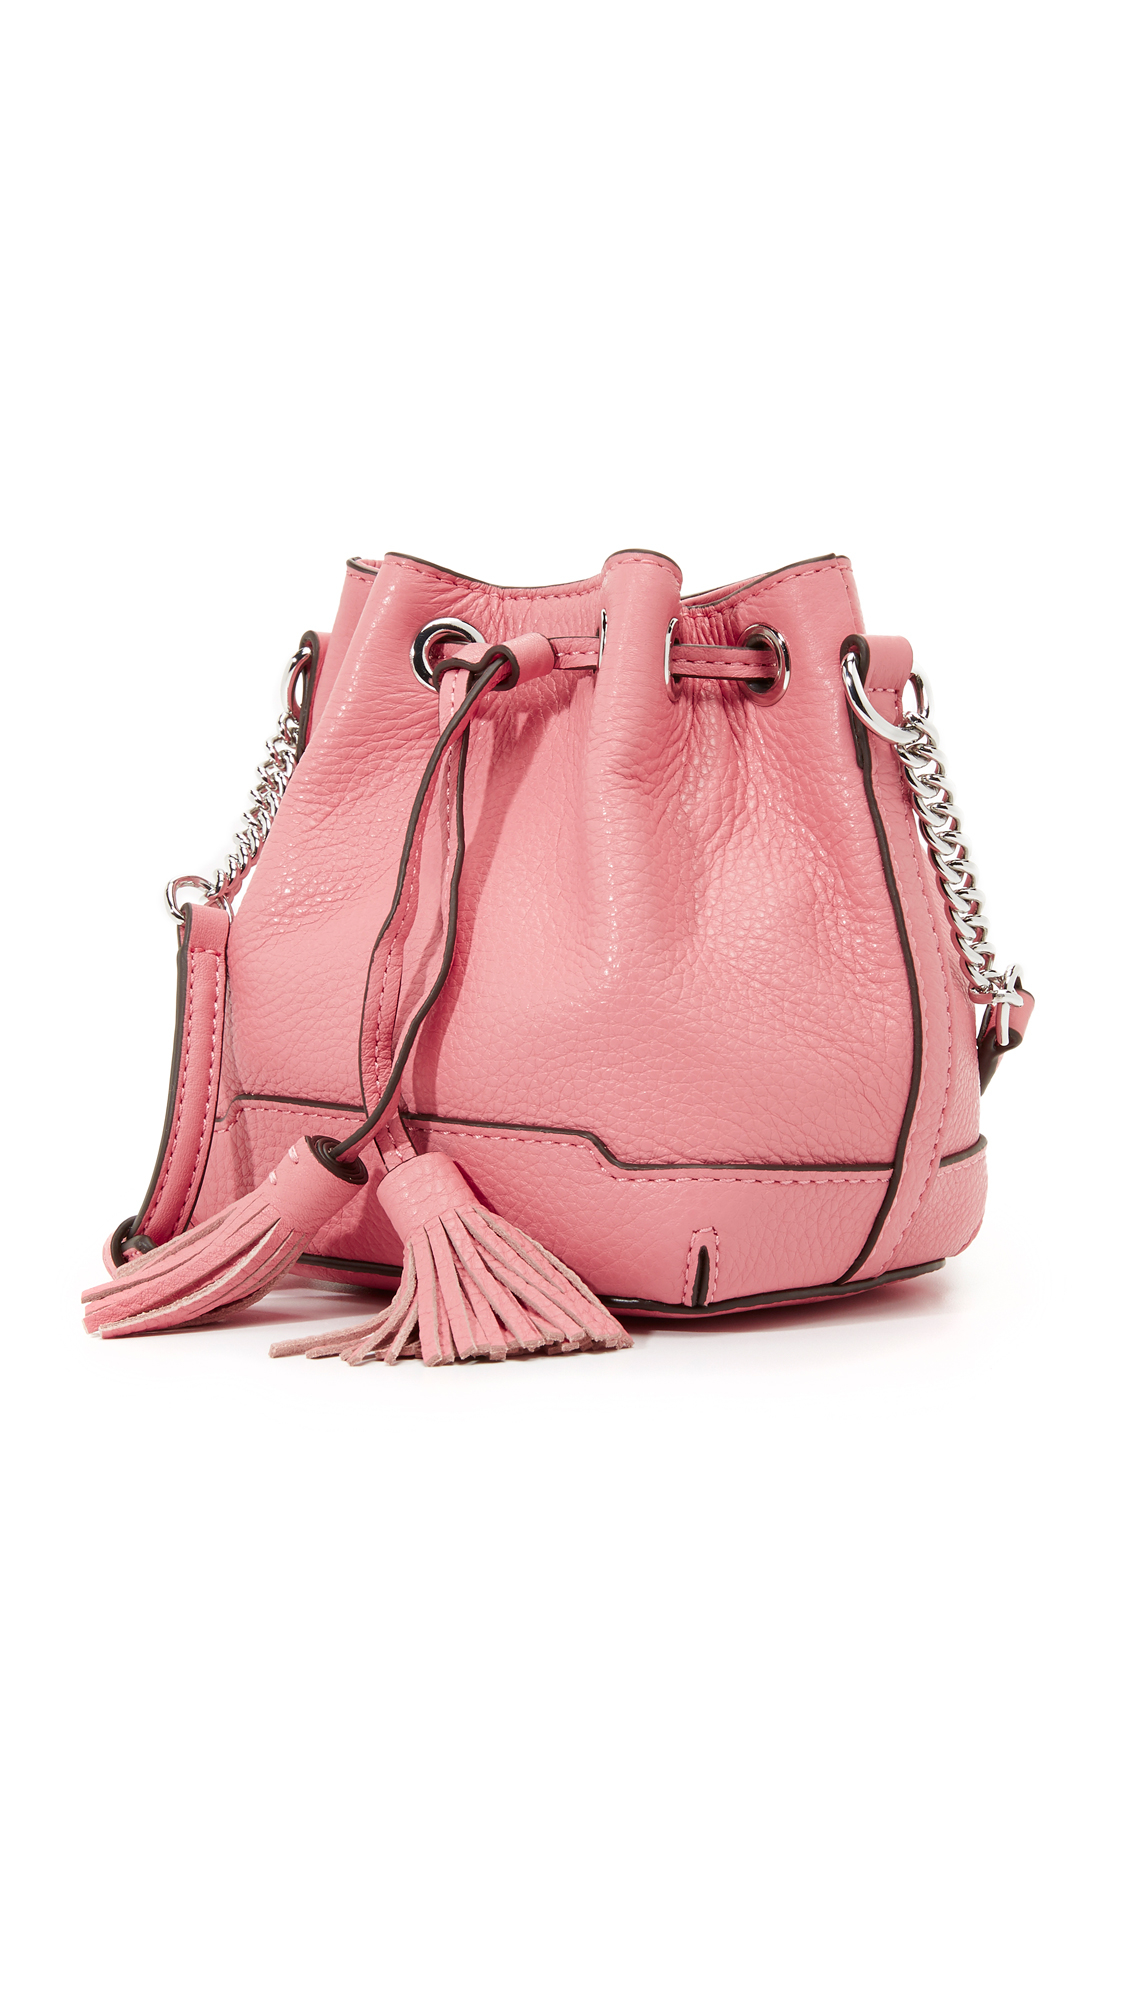 Rebecca Minkoff red mini Mac crossbody bag - There are some discoloration on the back (see the pic). A little wear out on the bottom. The inside is very clean. Go with a dust bag.